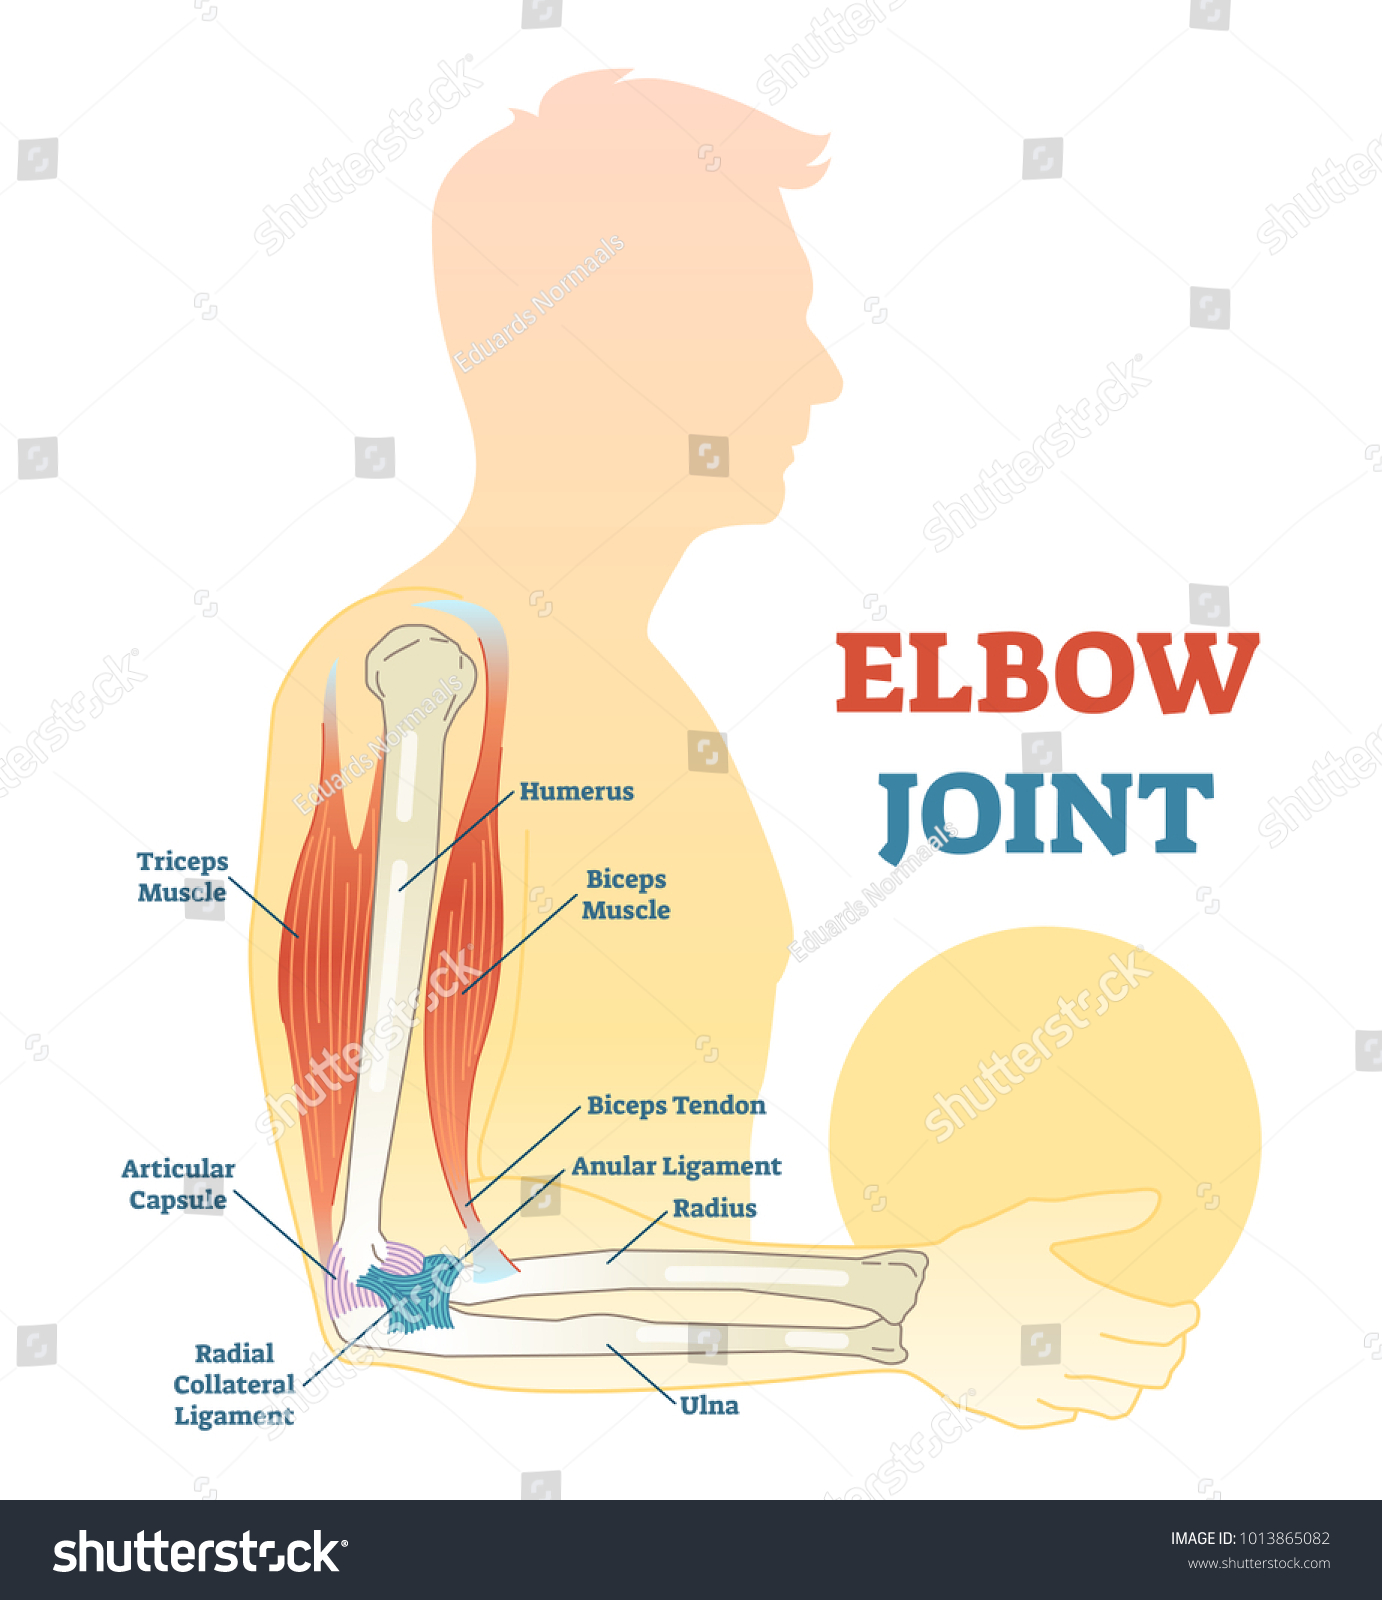 hight resolution of elbow joint vector illustrated diagram medical scheme educational sports injury information